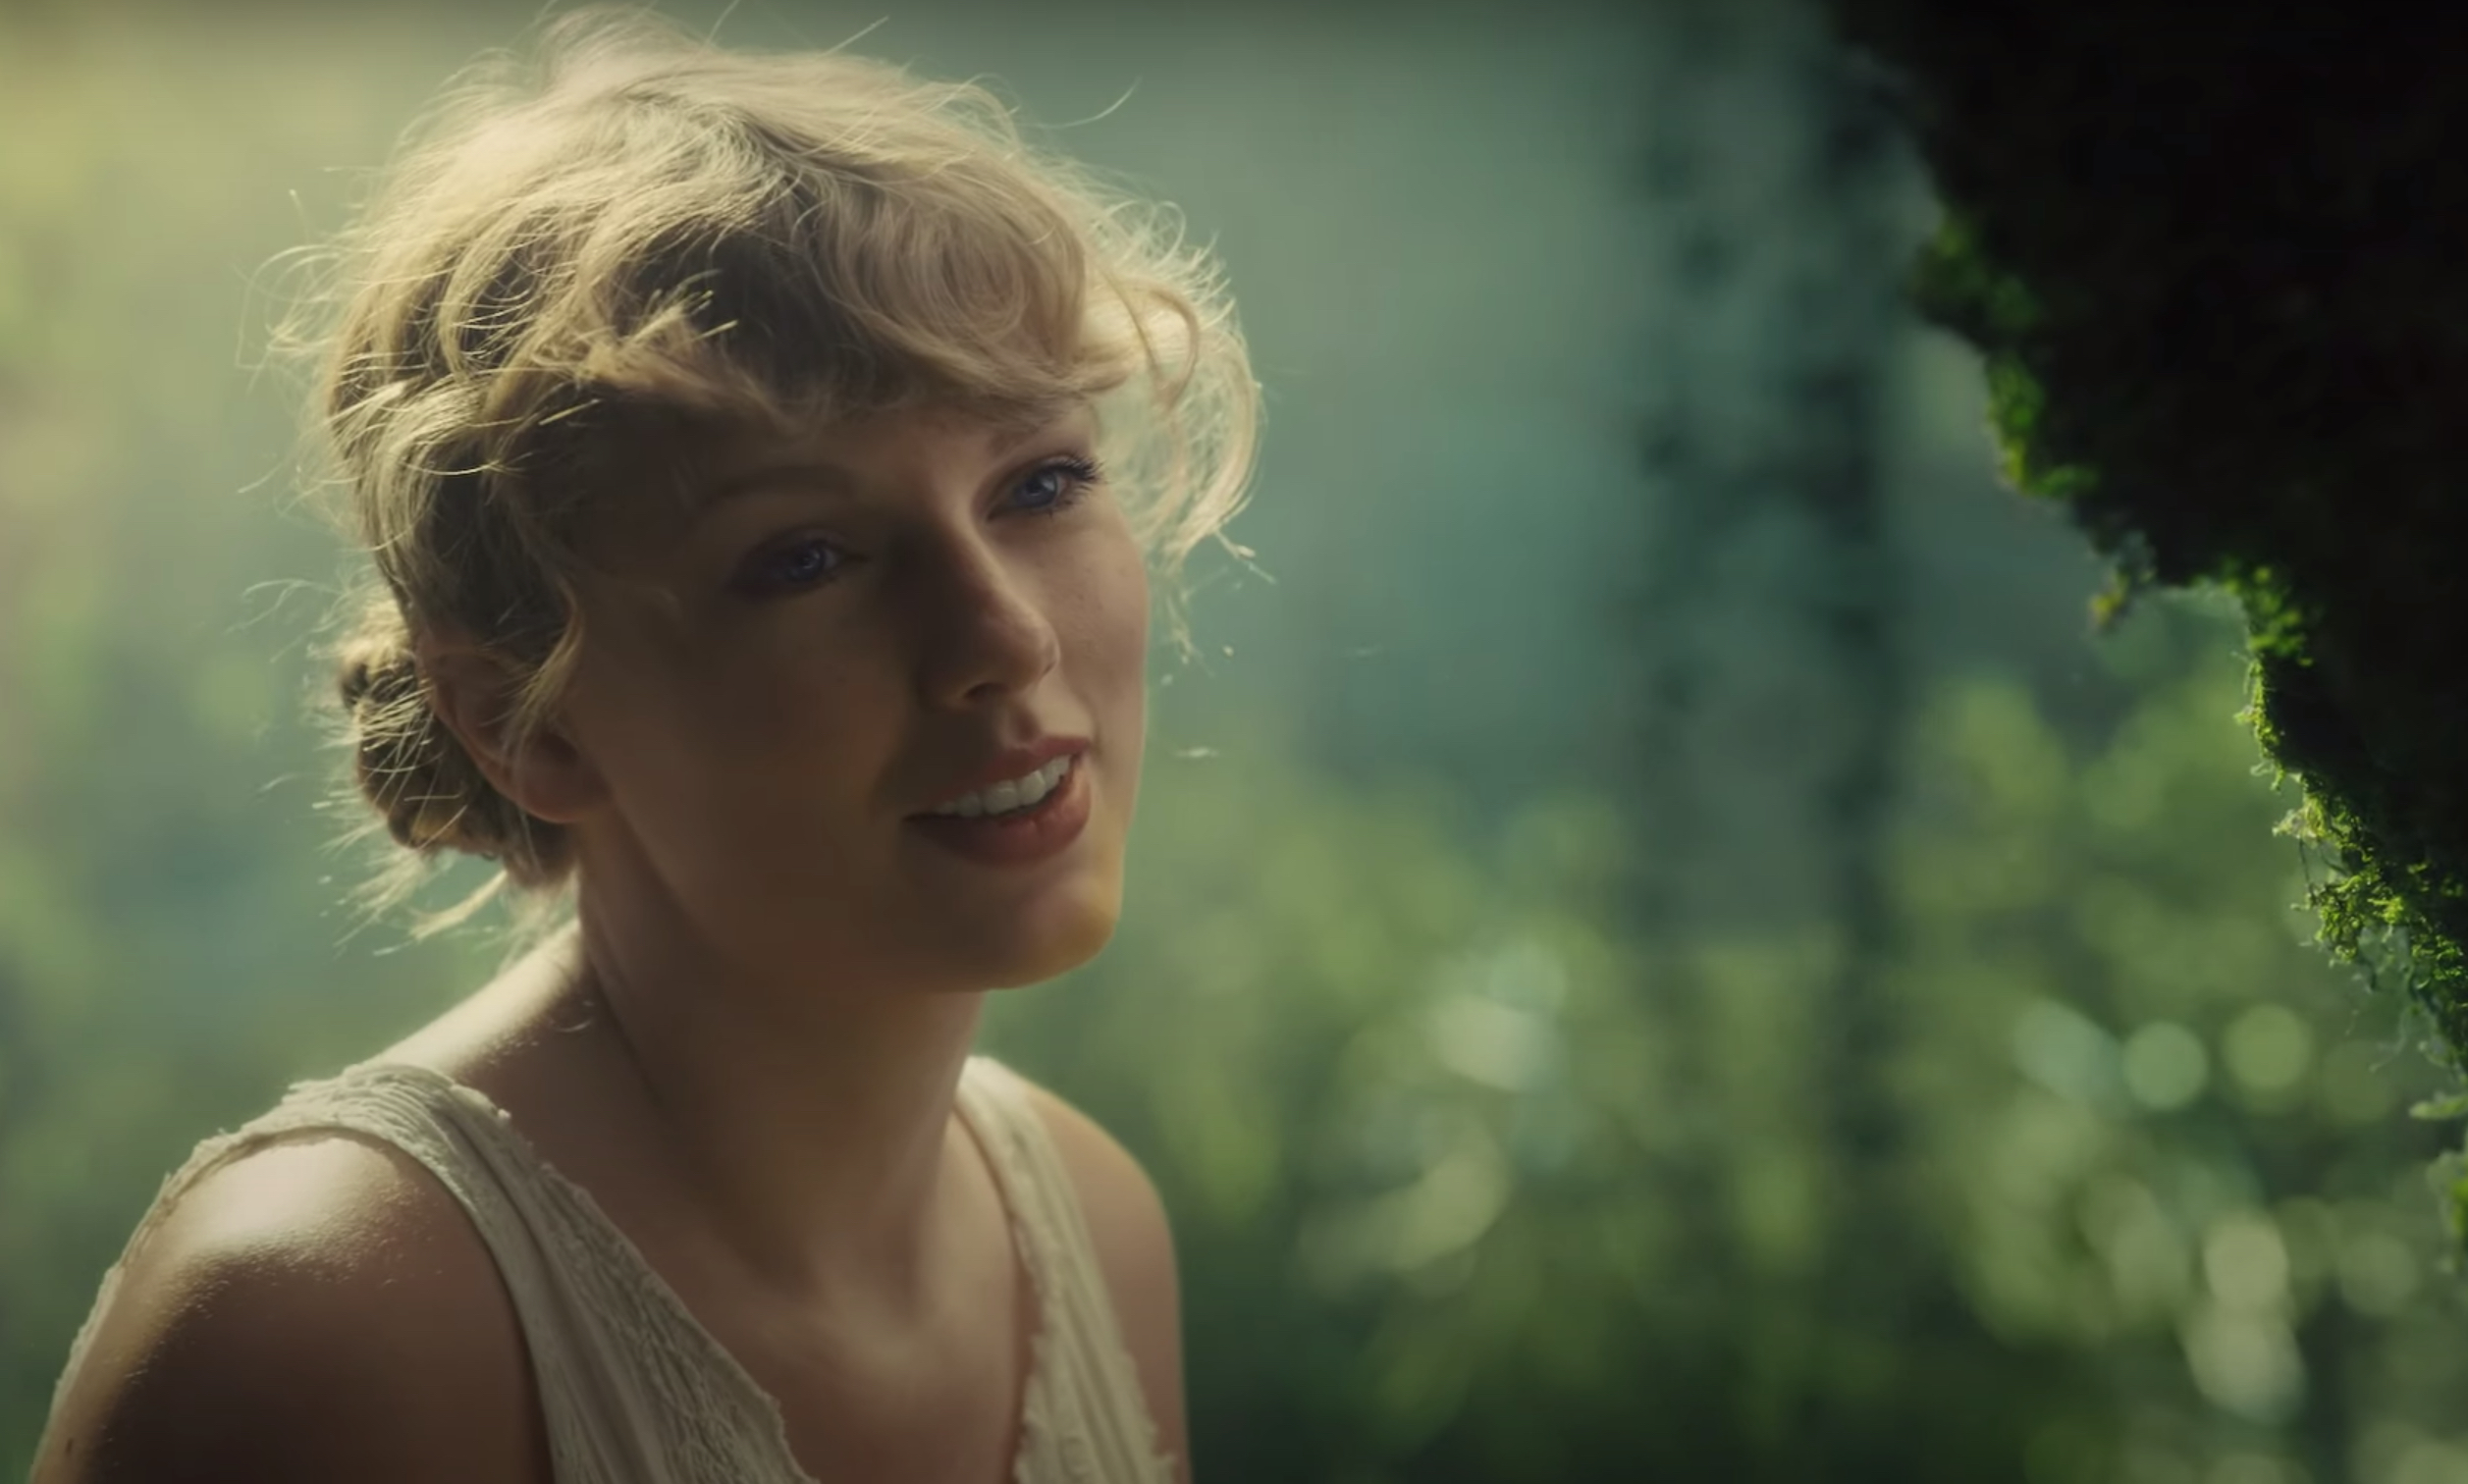 Taylor Swift Releases New Album, 'Folklore'